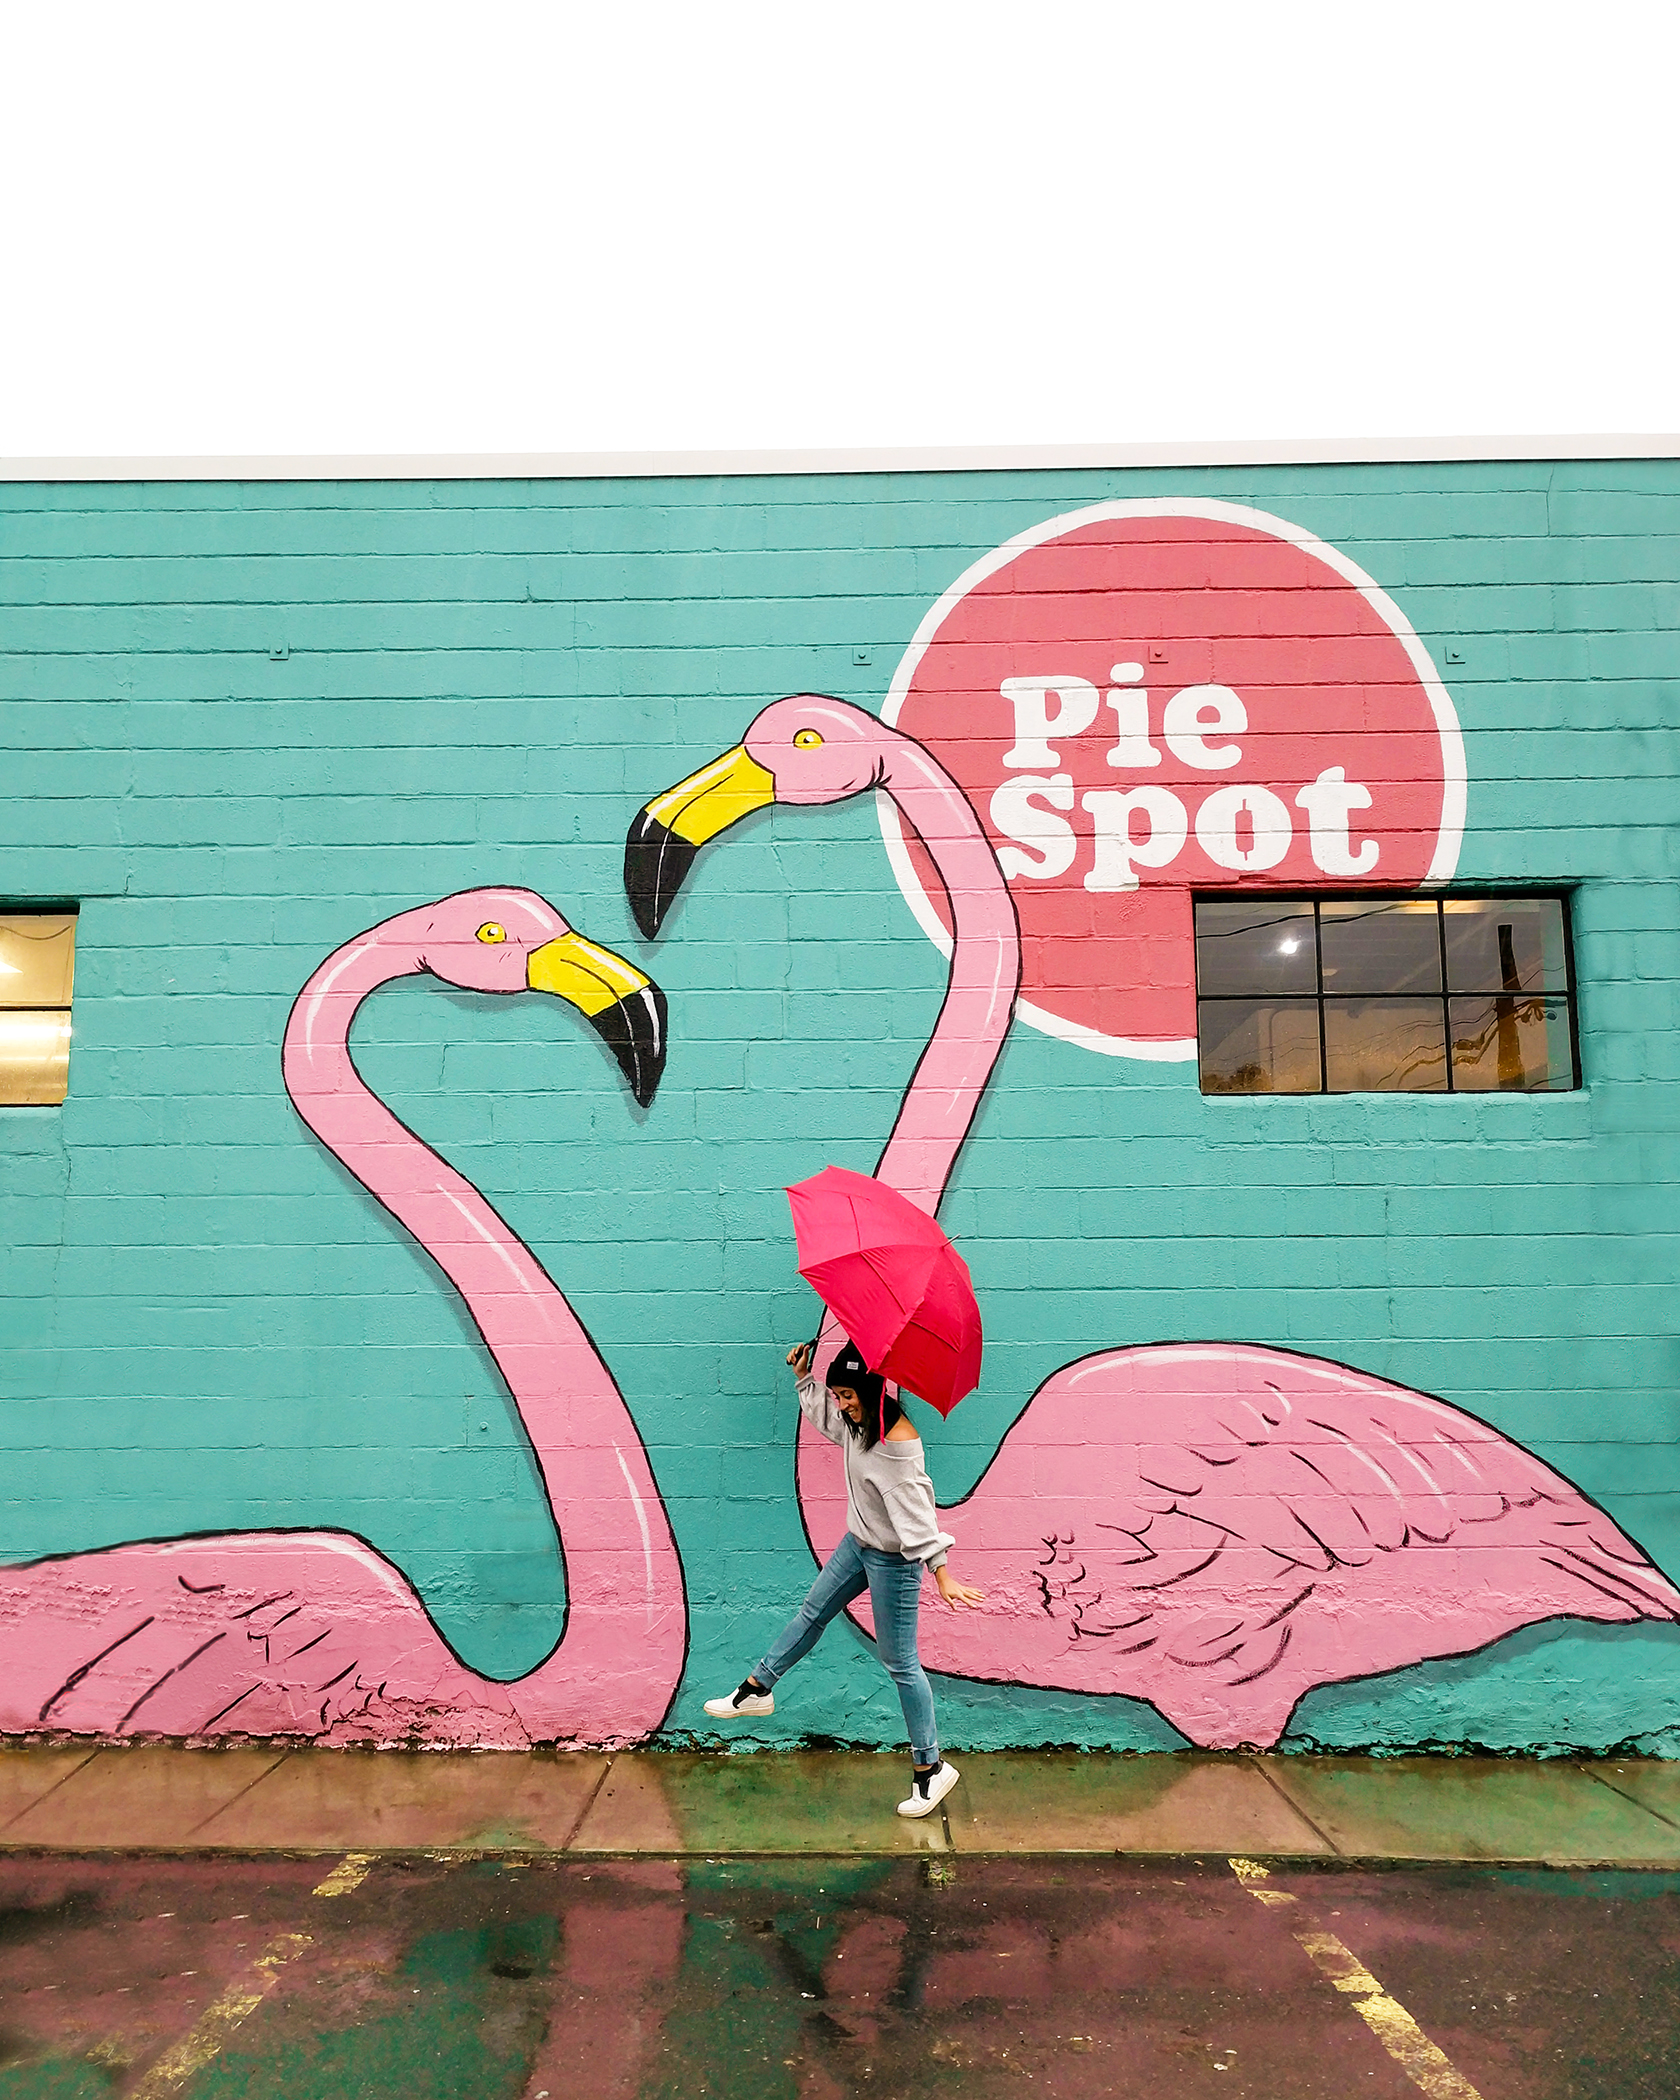 It may rain while you're out on your Insta adventures, this is Portland after all! So don't forget to bring your cute umbrella as a prop!